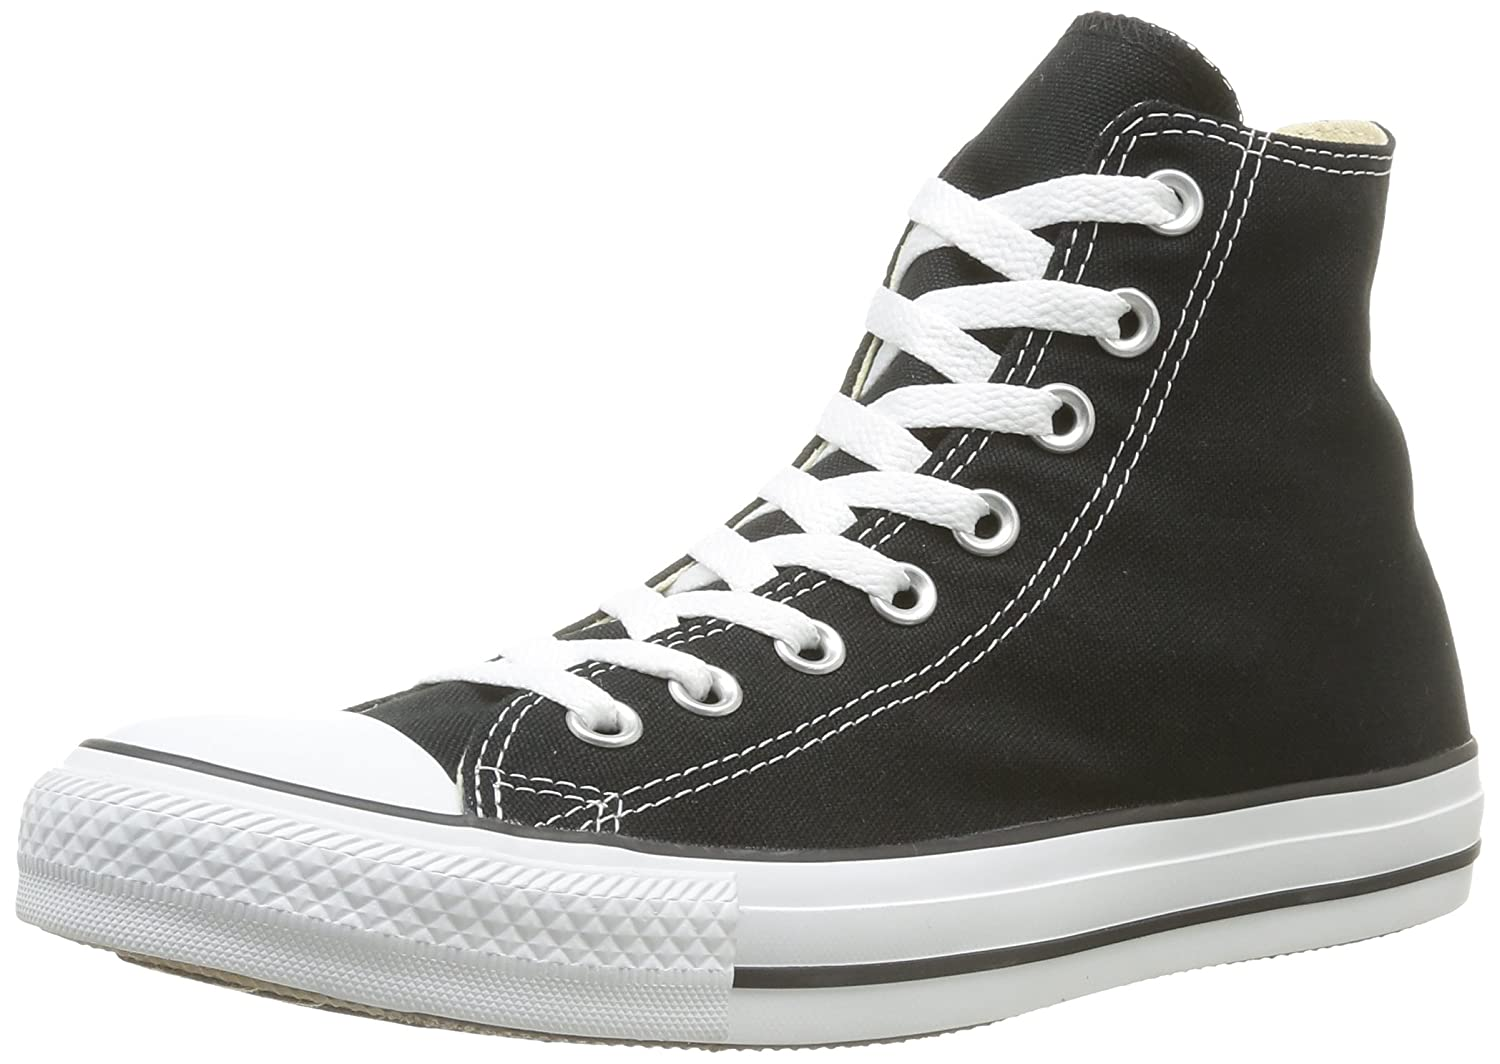 Converse Chuck Taylor All Star High Top Sneakers слиперы chuck taylor all star cove converse